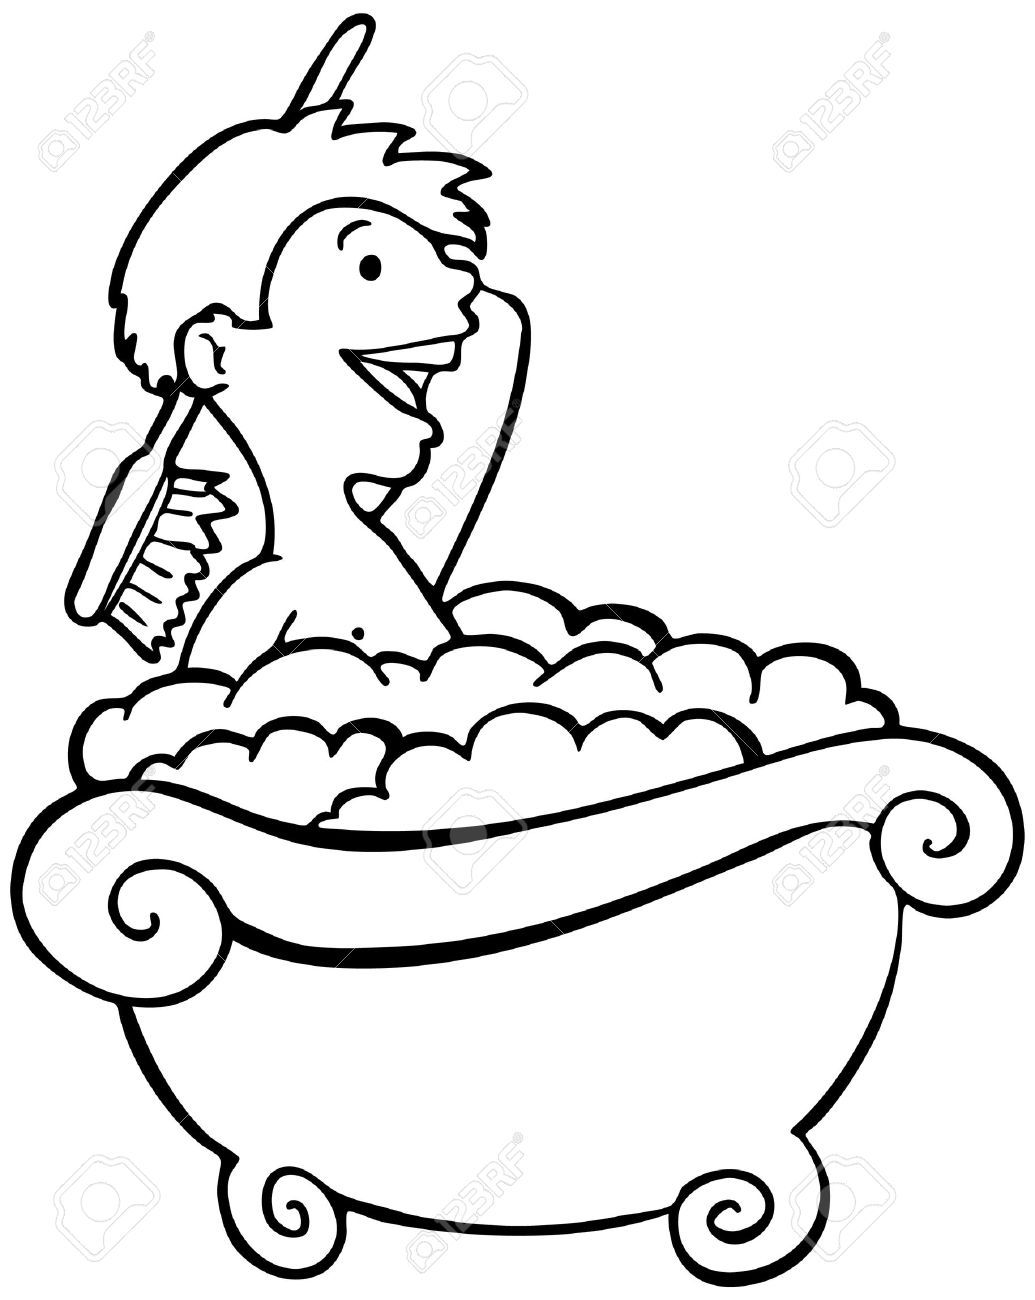 Bath clipart black and white 7 » Clipart Station.